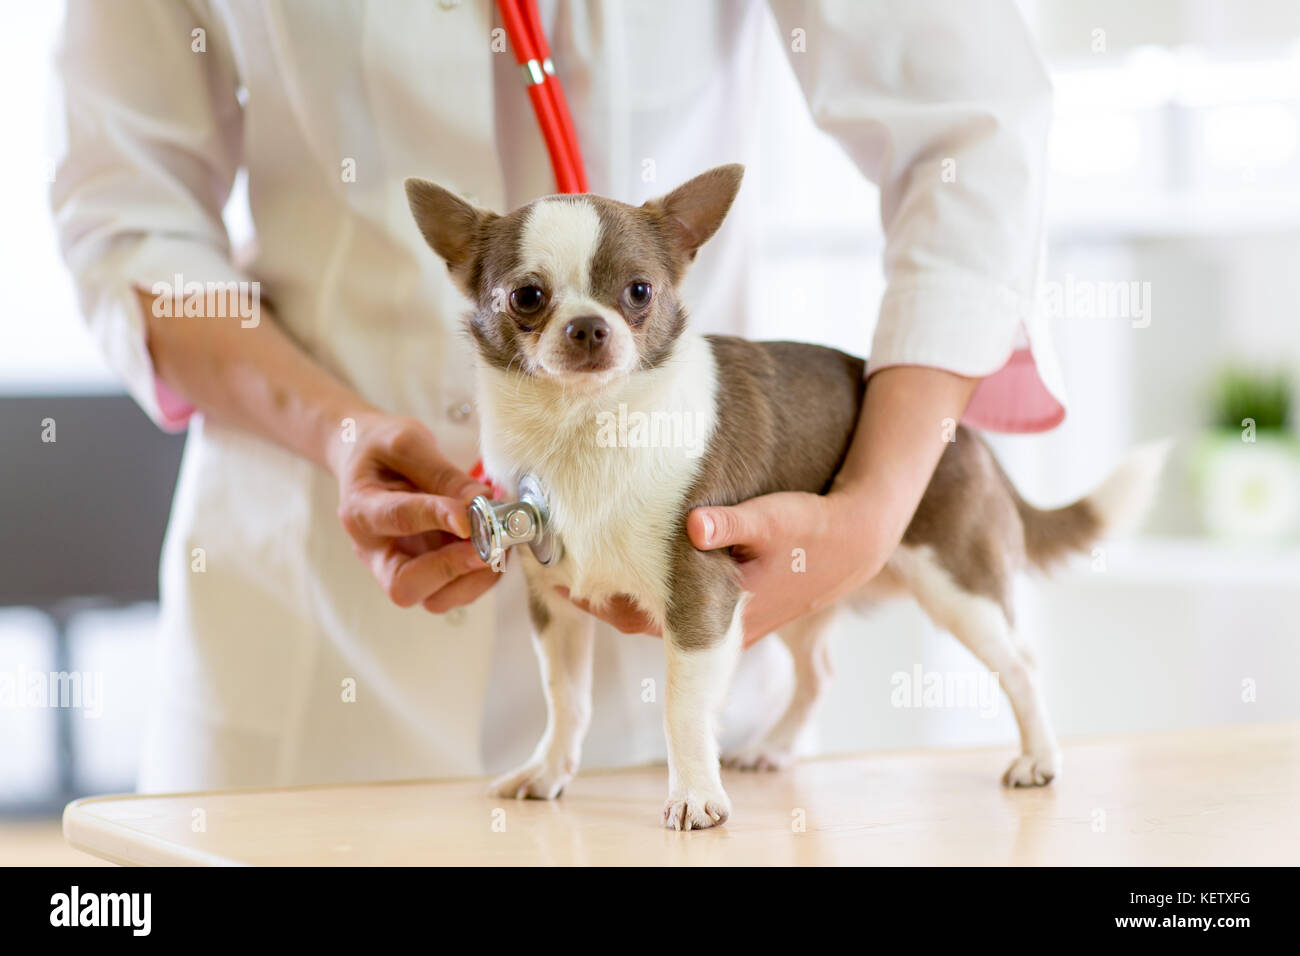 Veterinarian doctor using stethoscope during examination in veterinary clinic. Dog terrier in veterinary clinic - Stock Image